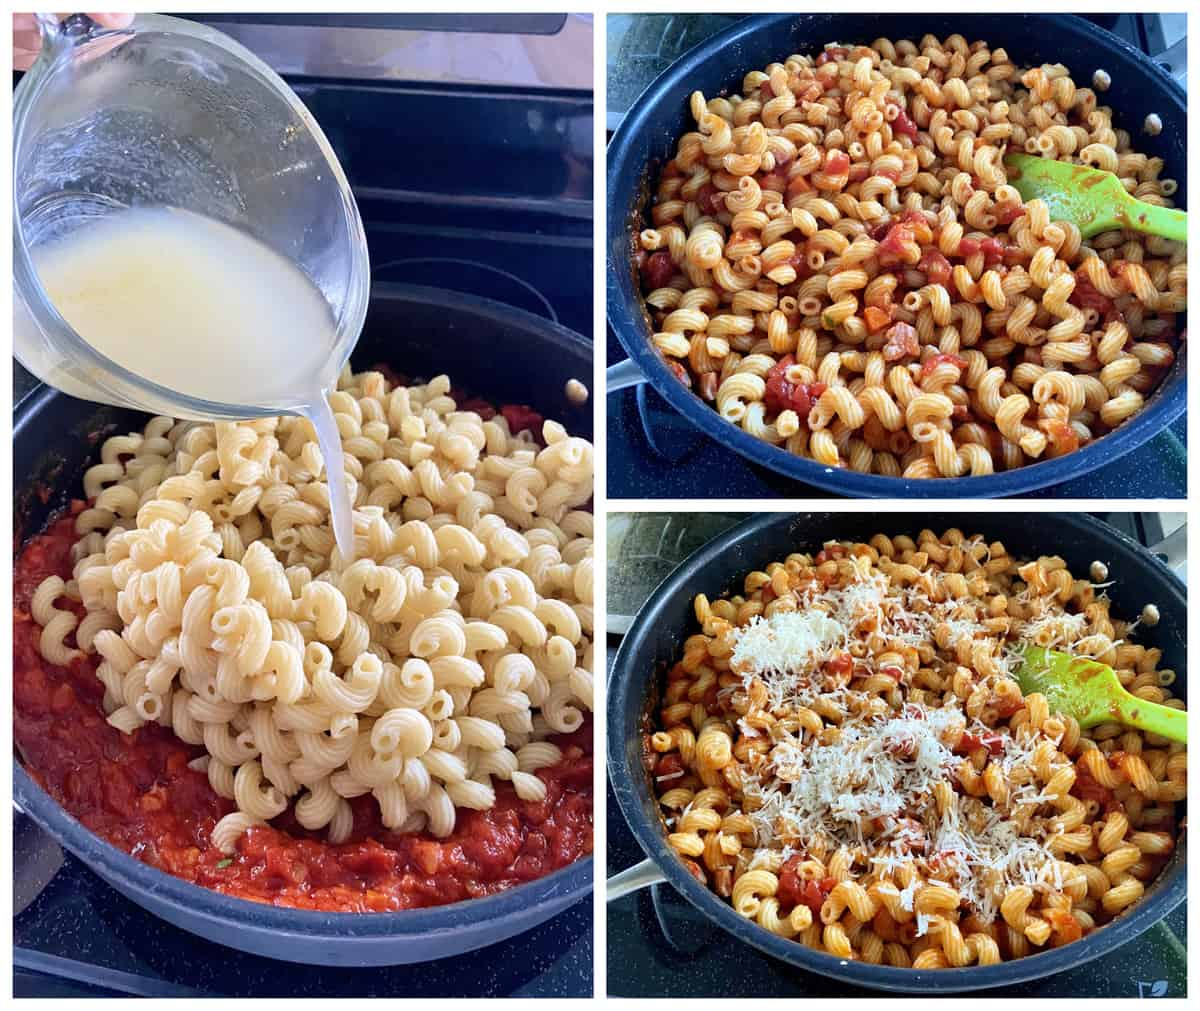 Three photos: left of pasta water pouring into corkscrew pasta with sauce, right of grated cheese and basil.